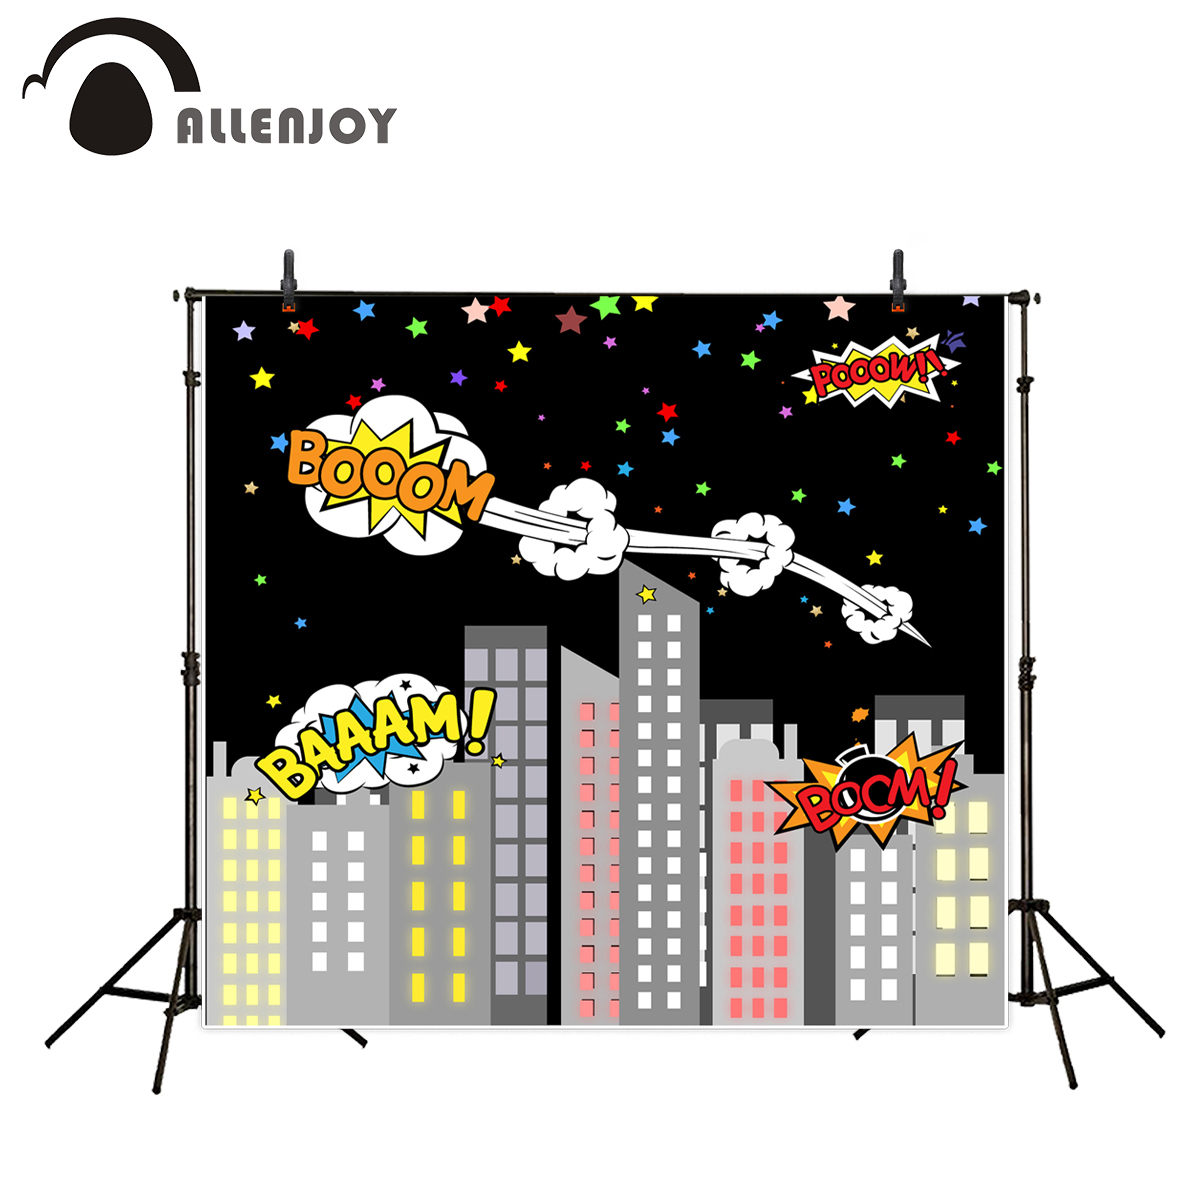 Allenjoy photographic background Sky colored bomb boom night backgrounds for photo studio photography backdrops wallpaper